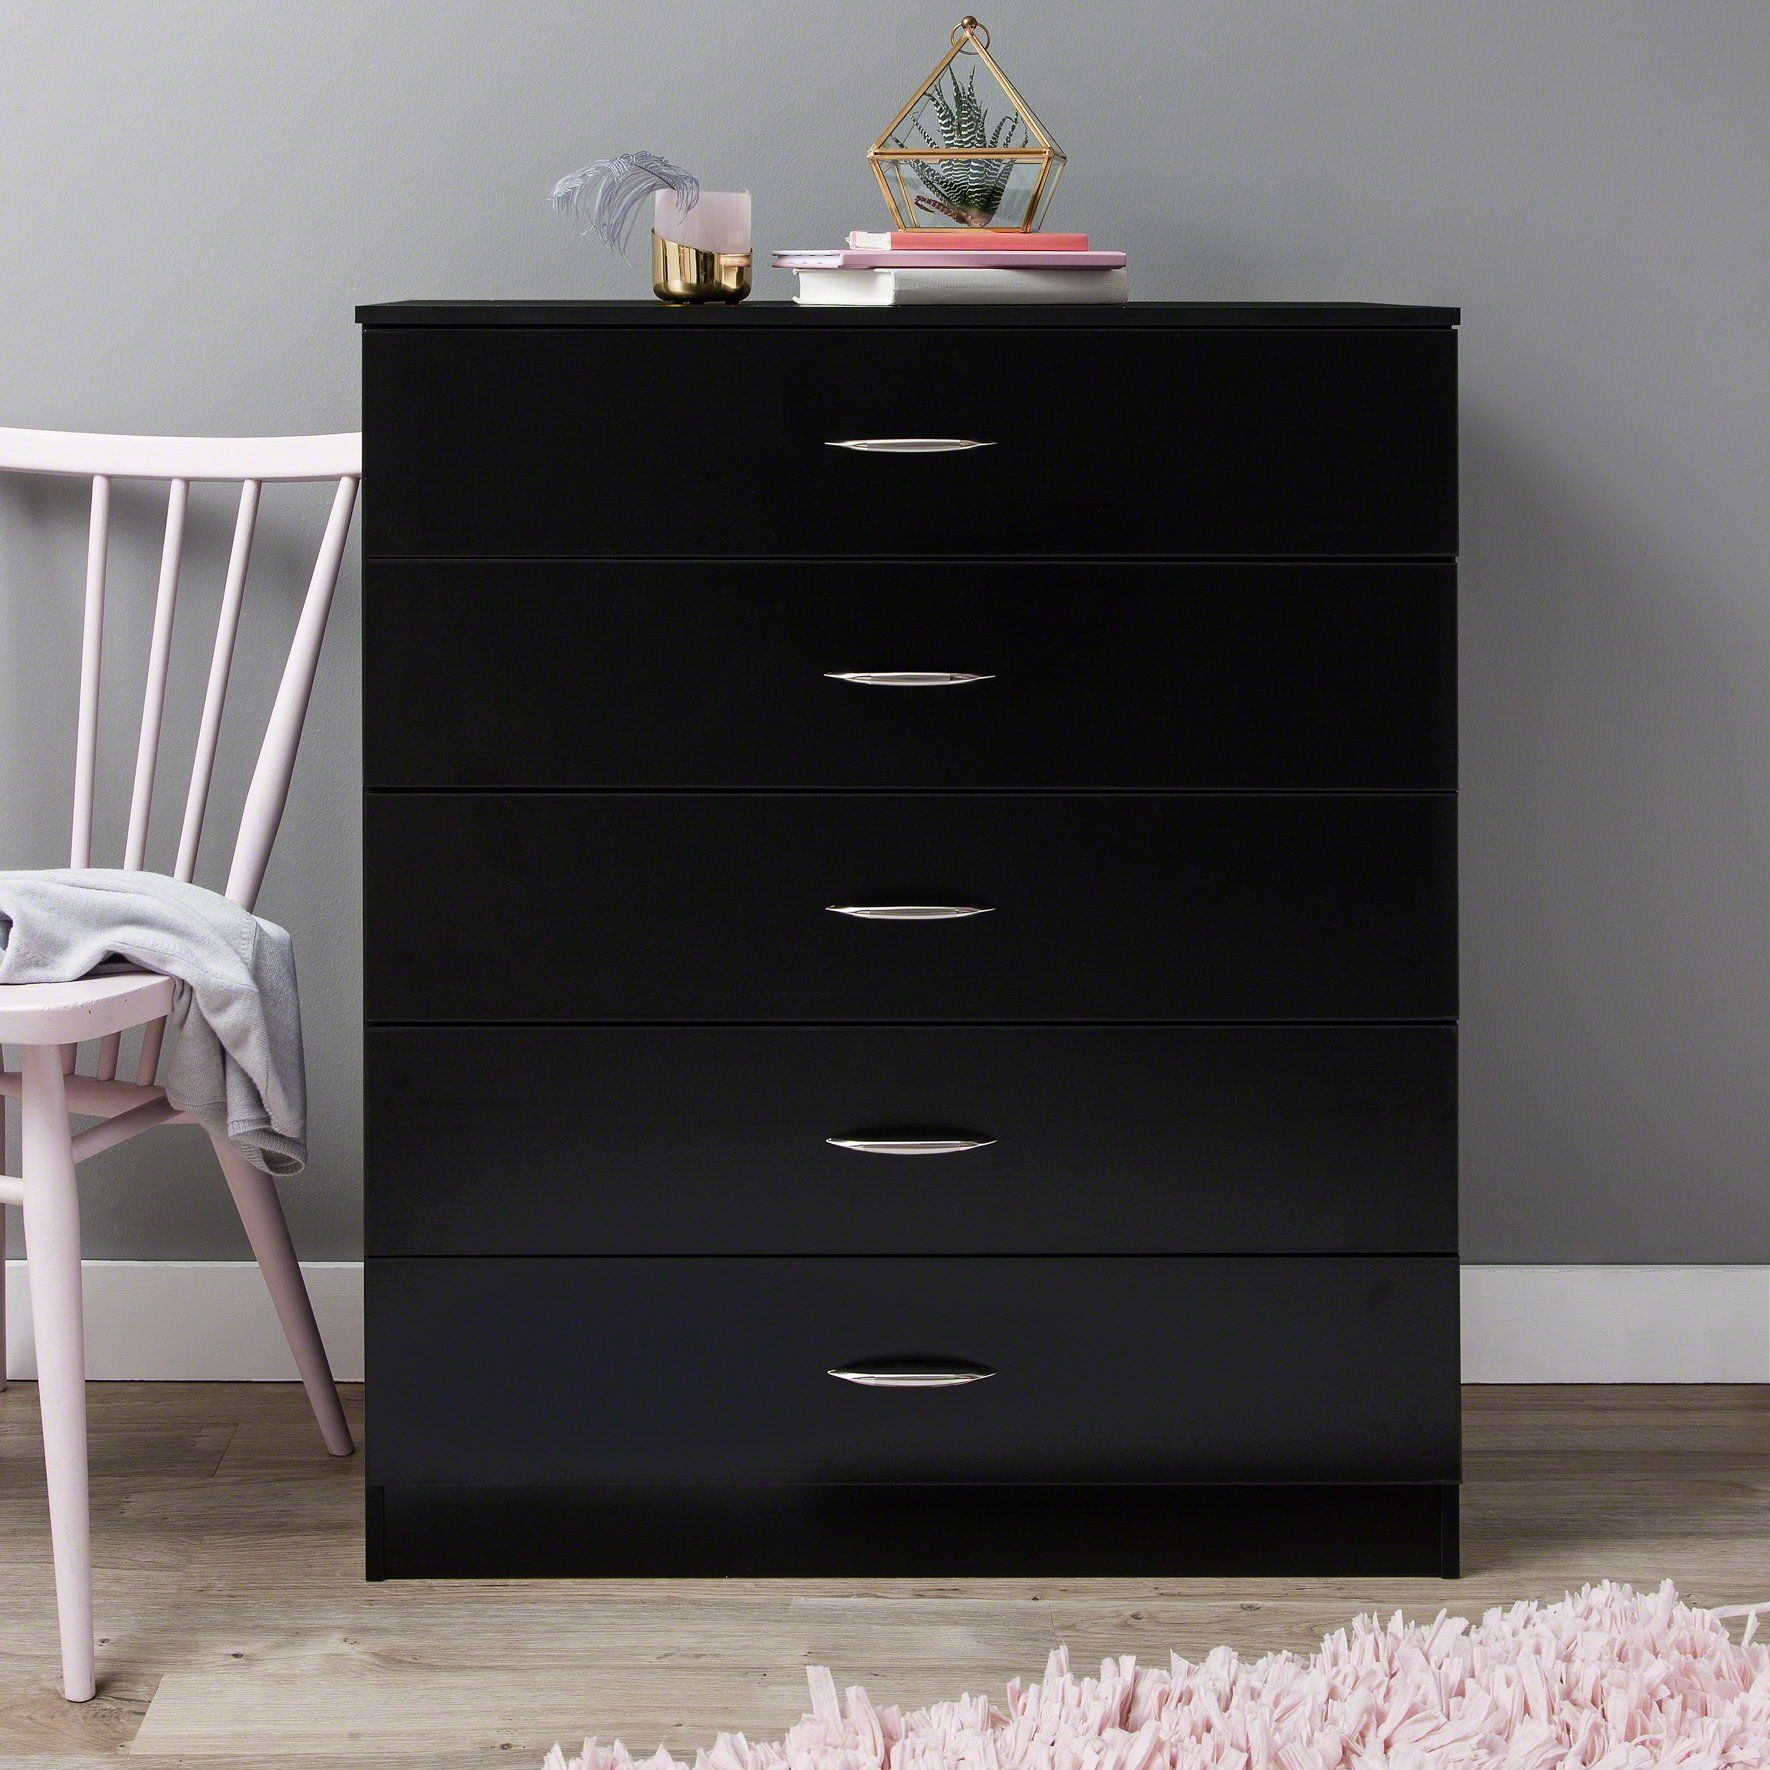 Chest of Drawers - Black - In Stock Date - 29th January 2020